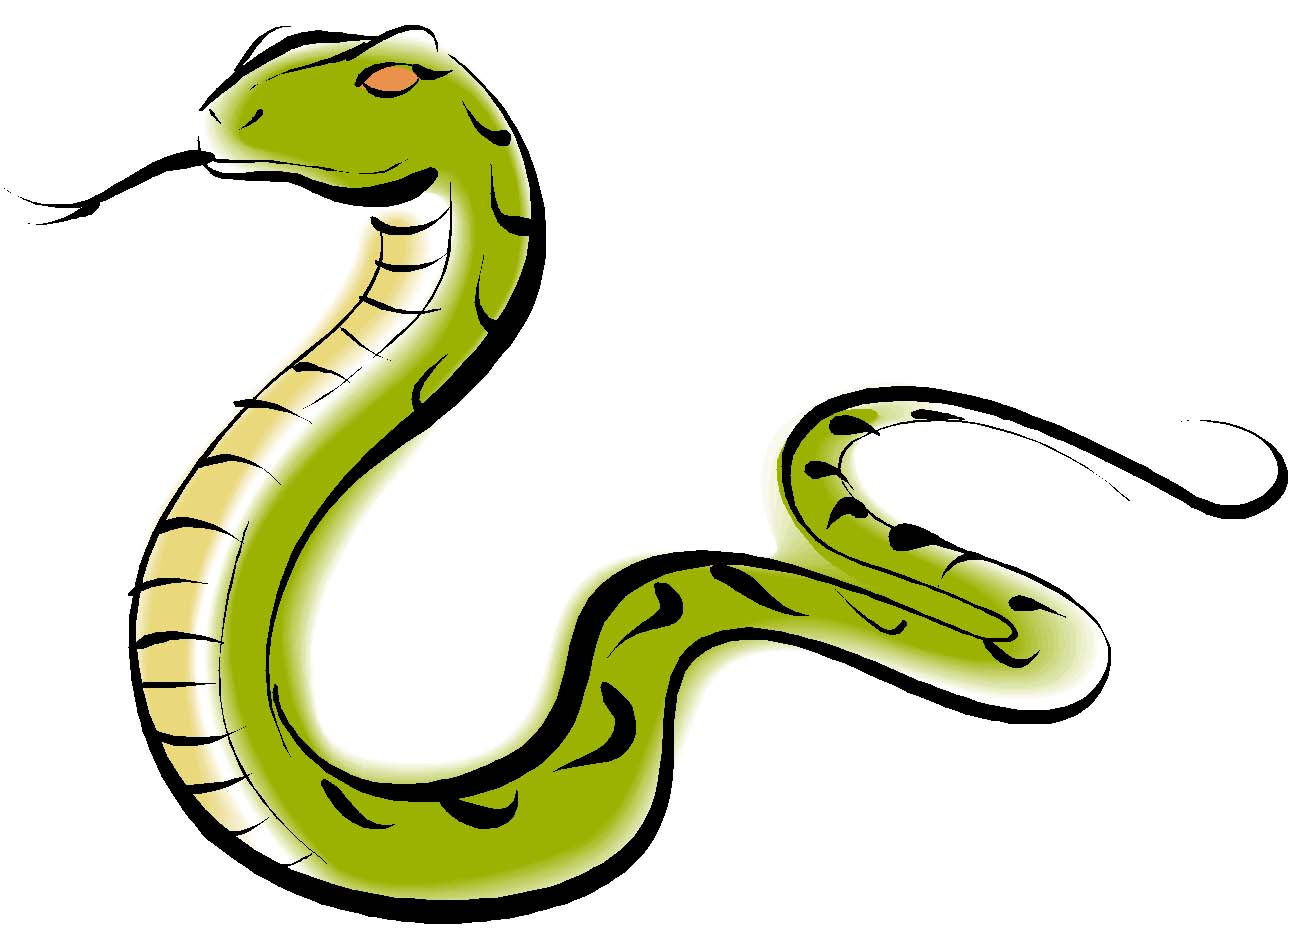 Anaconda clipart #16, Download drawings